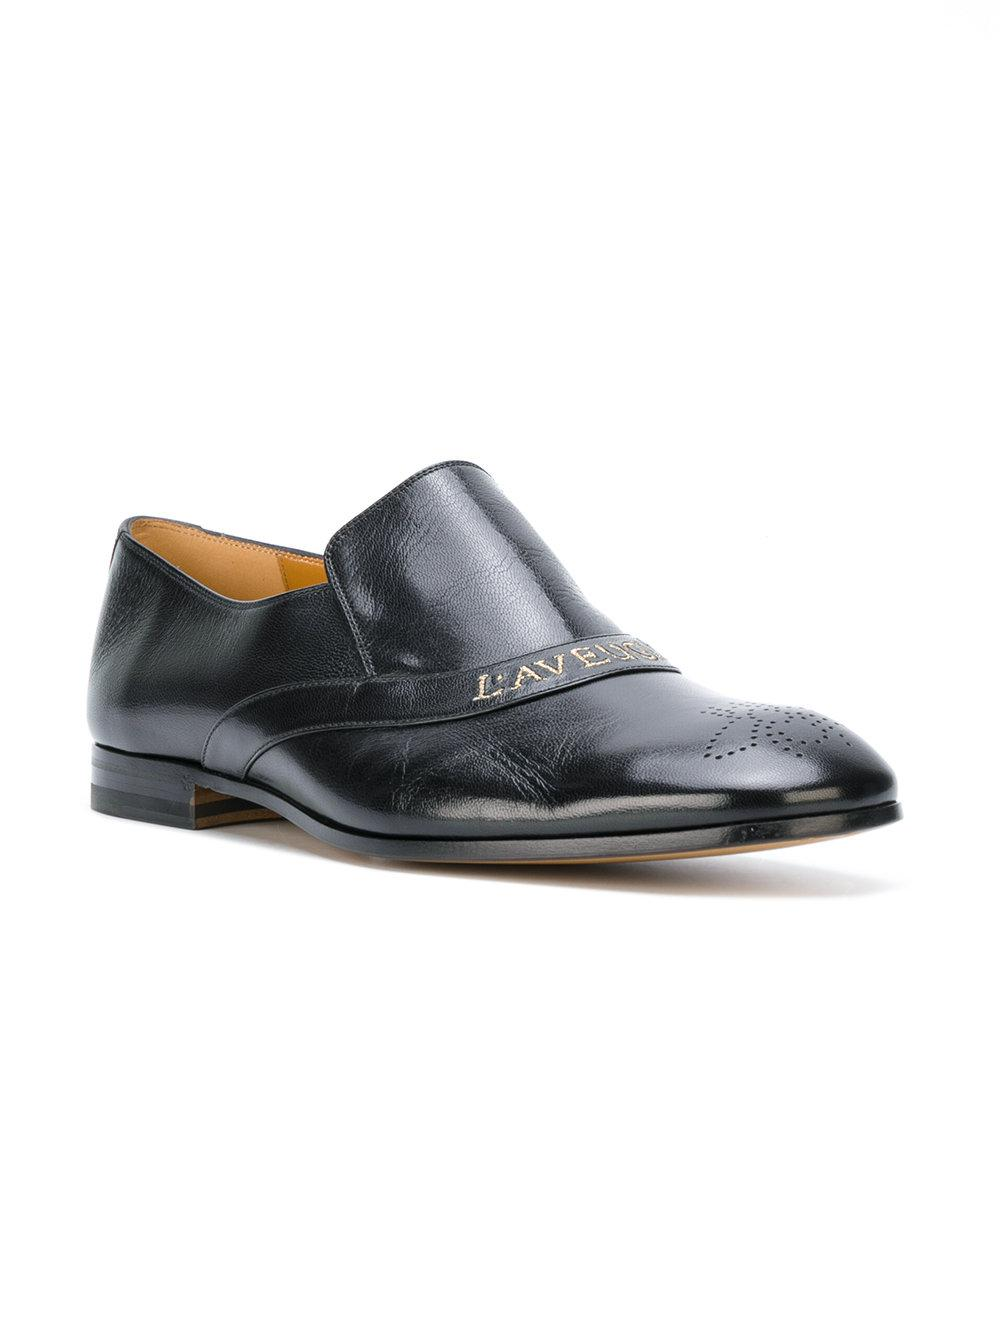 781263467eb Lyst - Gucci Embroidered Loafers in Black for Men